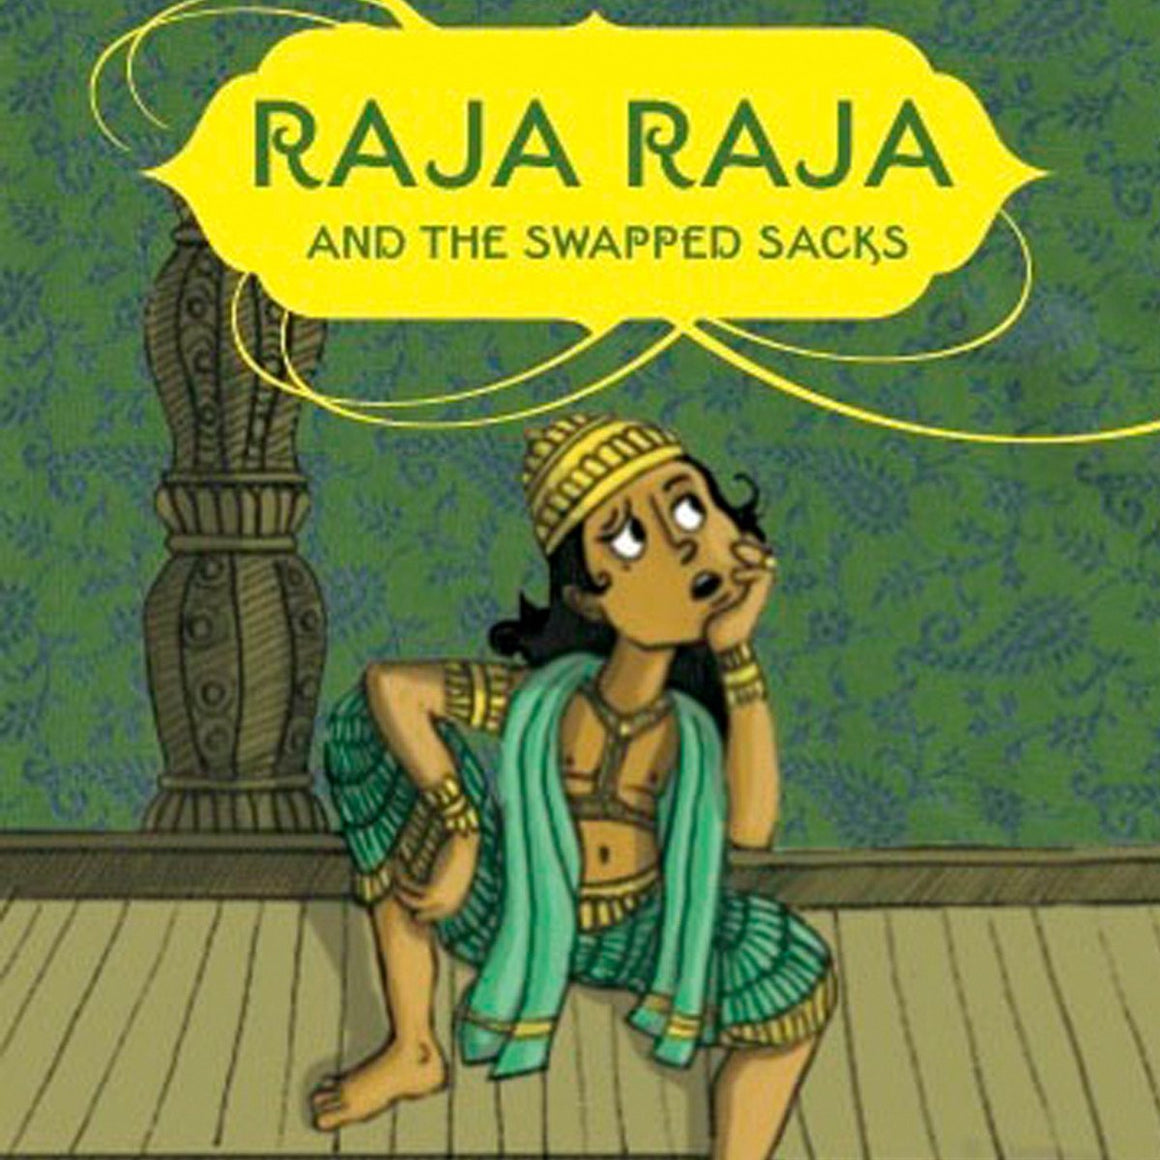 Raja Raja and the Swapped Sacks - by Natasha Sharma | Free Shipping